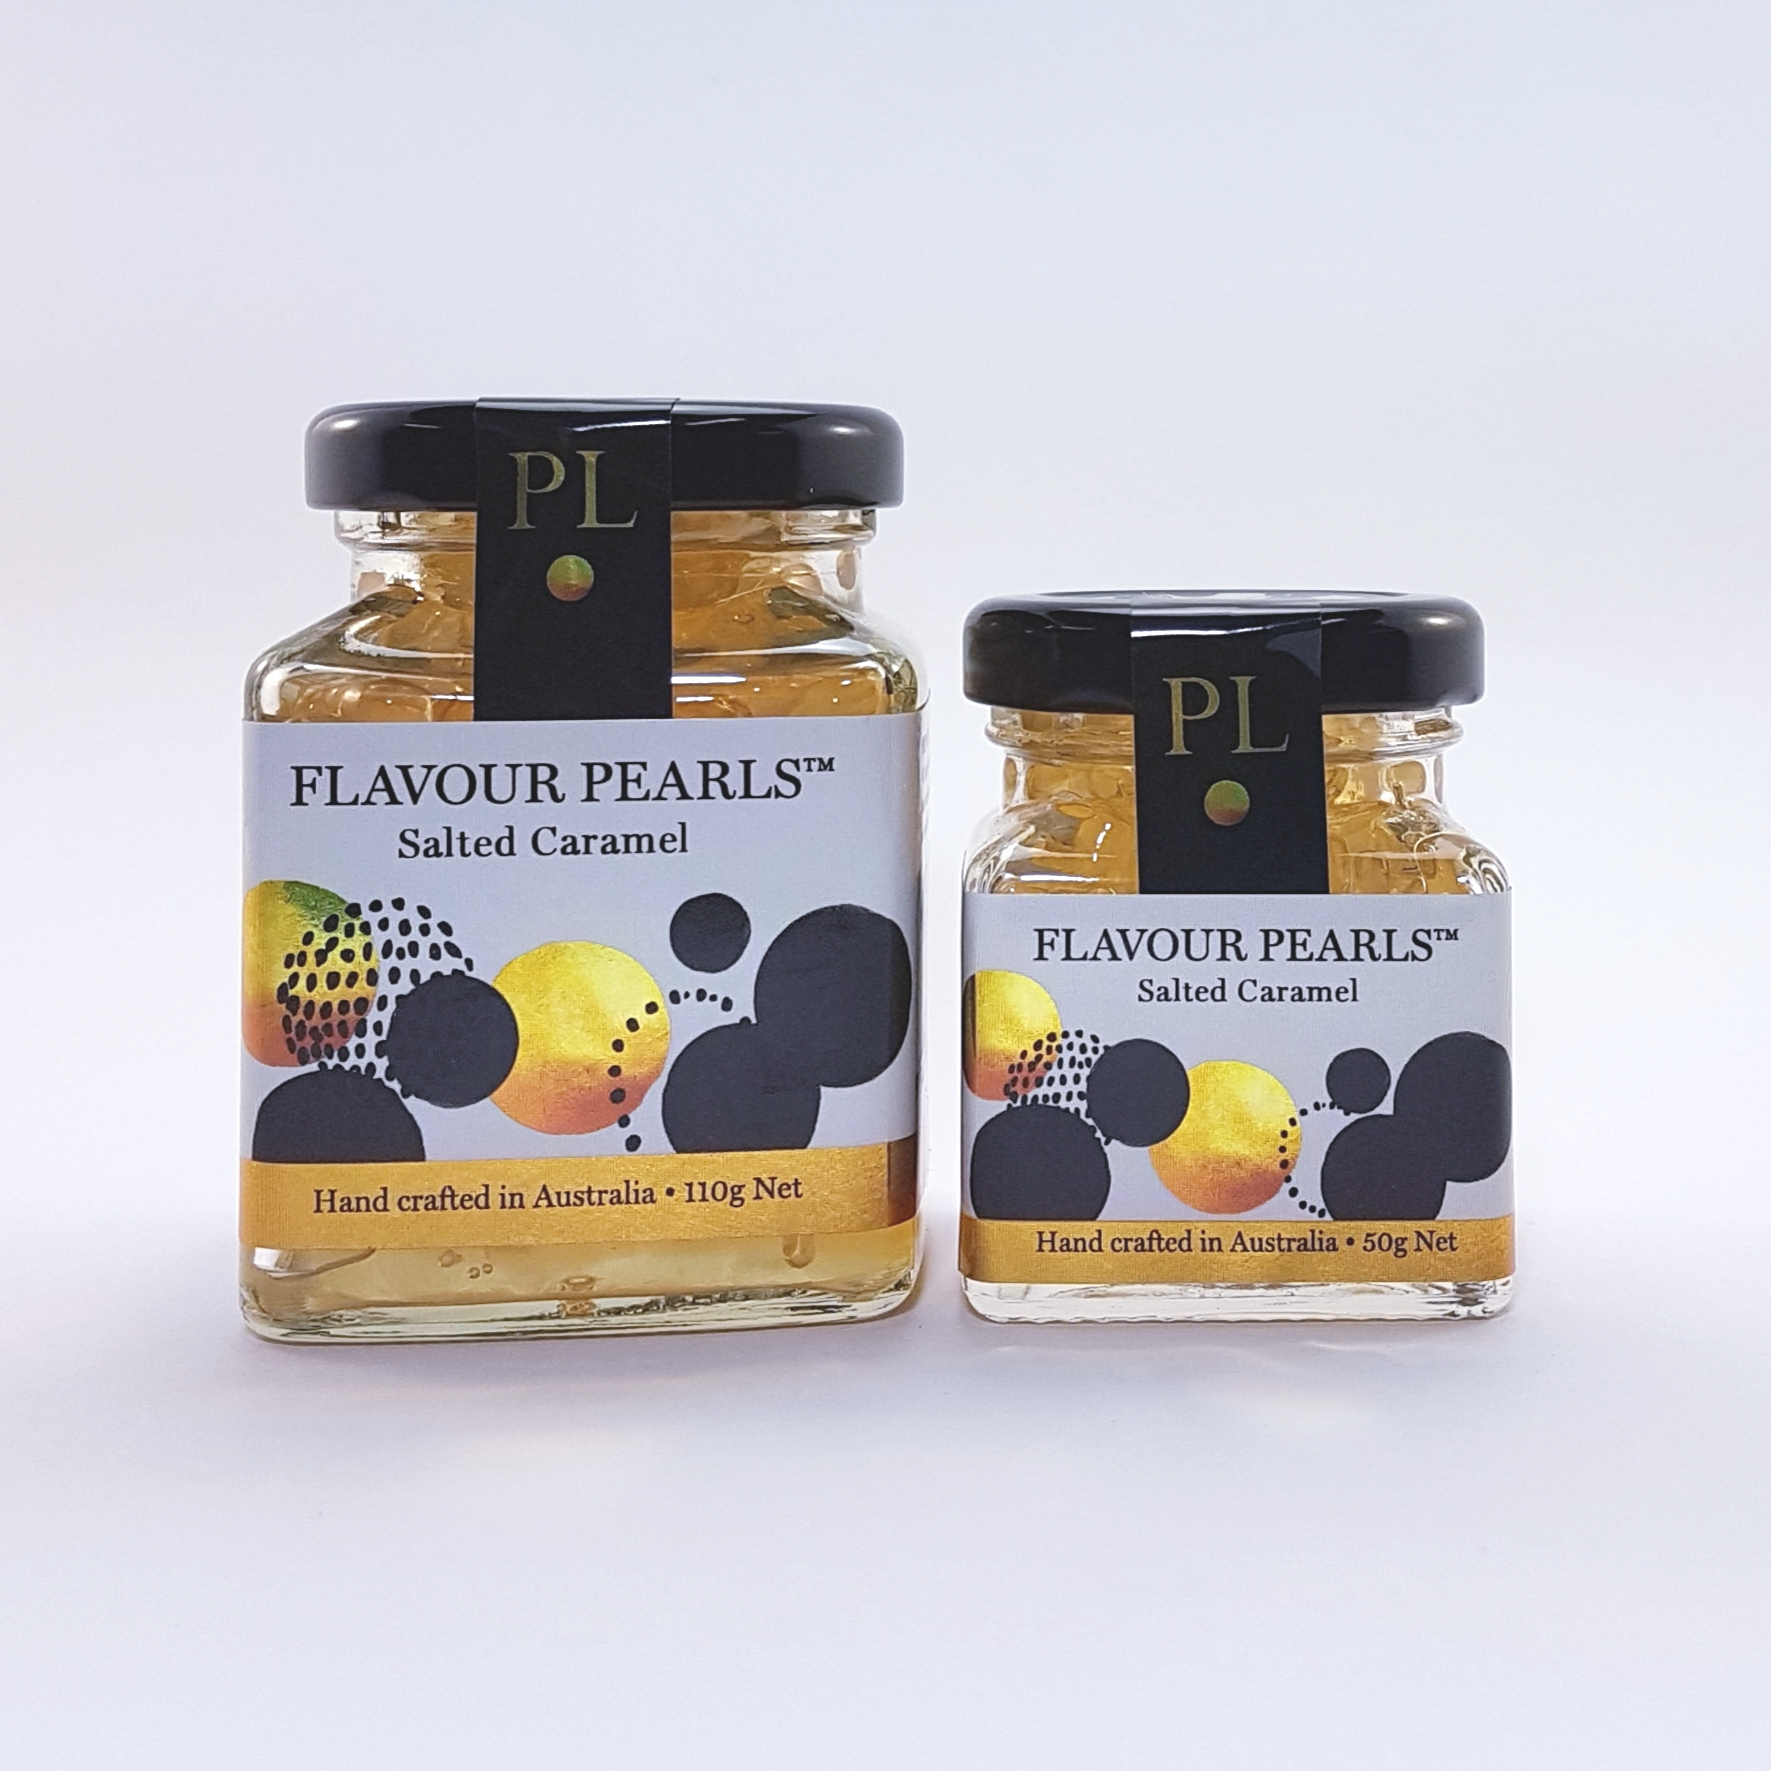 Salted Caramel Flavour Pearls 110g and 50g Jars